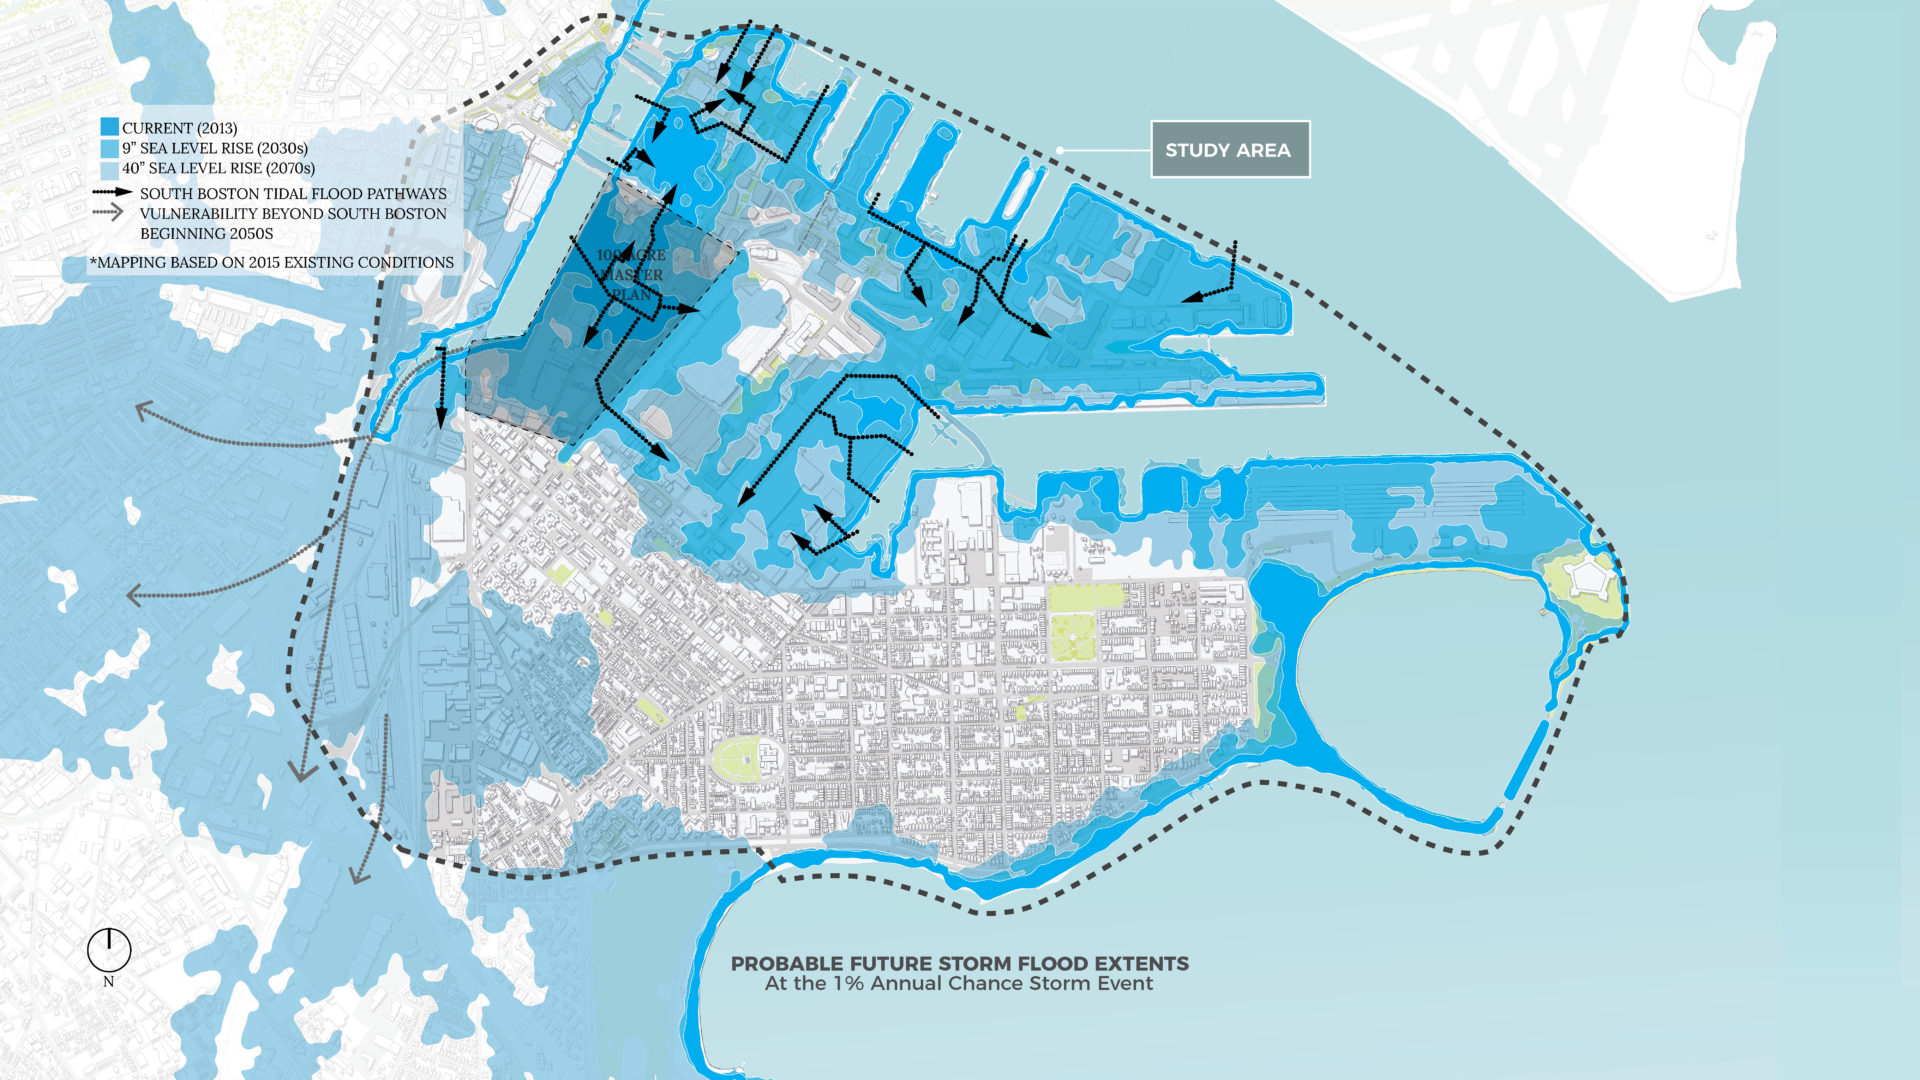 In 50 years, sea-level rise could put almost all of the Seaport District at risk of storm surge flooding. Photo courtesy of Boston Mayor's Office of Environment, Energy, and Open Space.